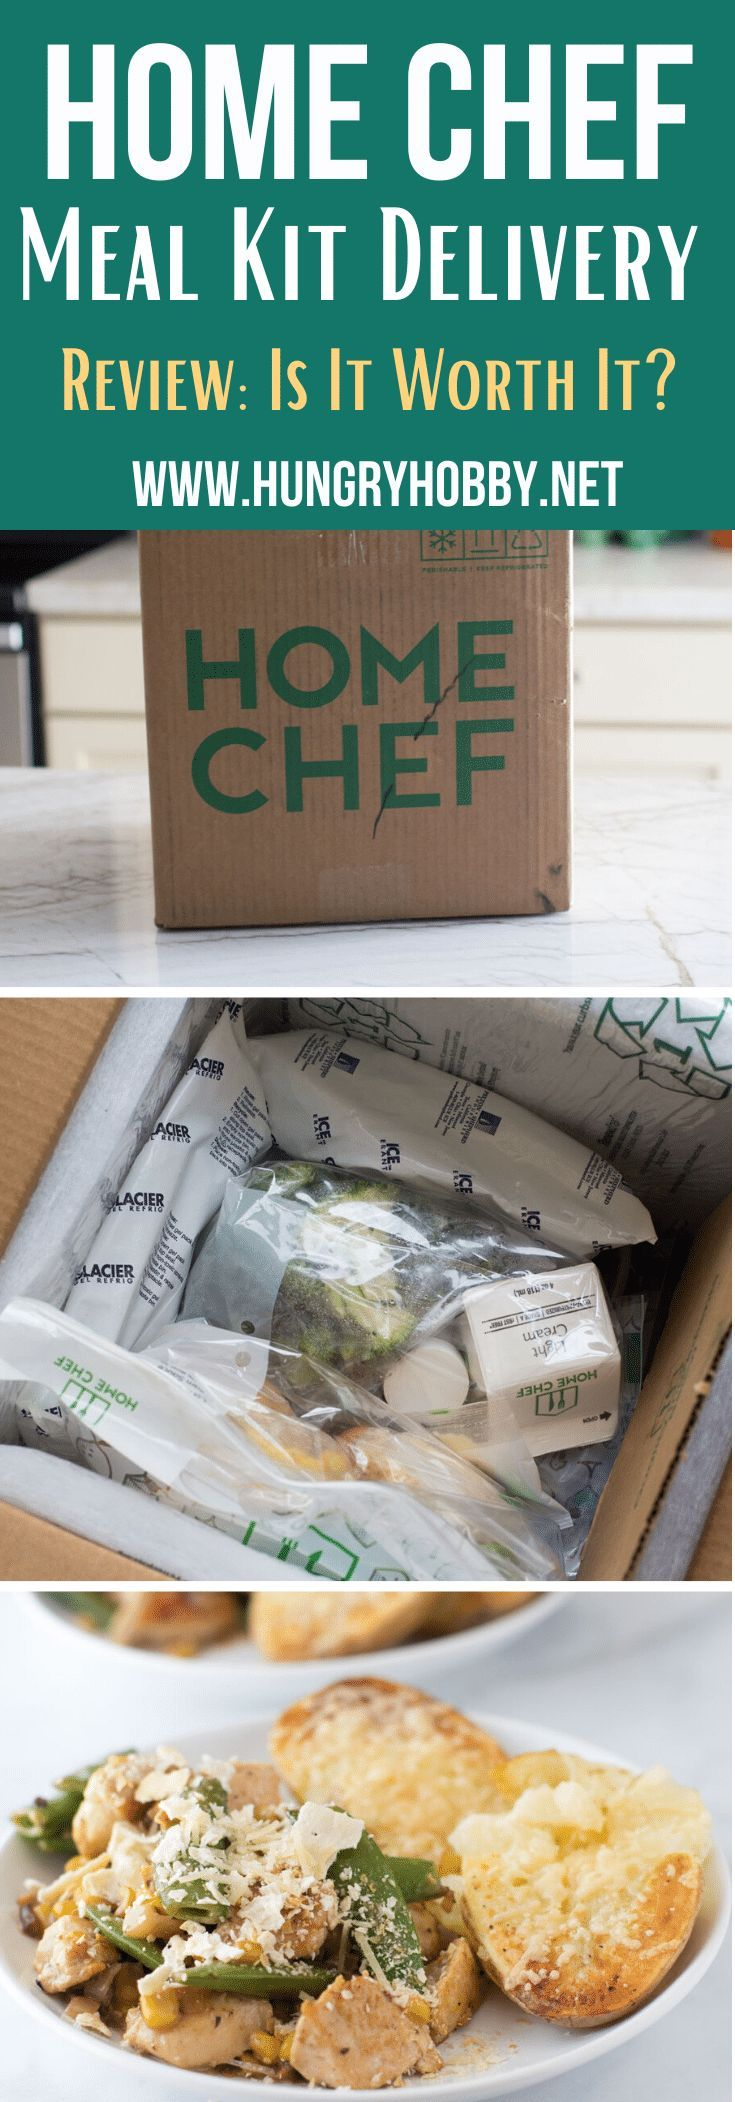 Home chef meal kit delivery service is it healthy is it